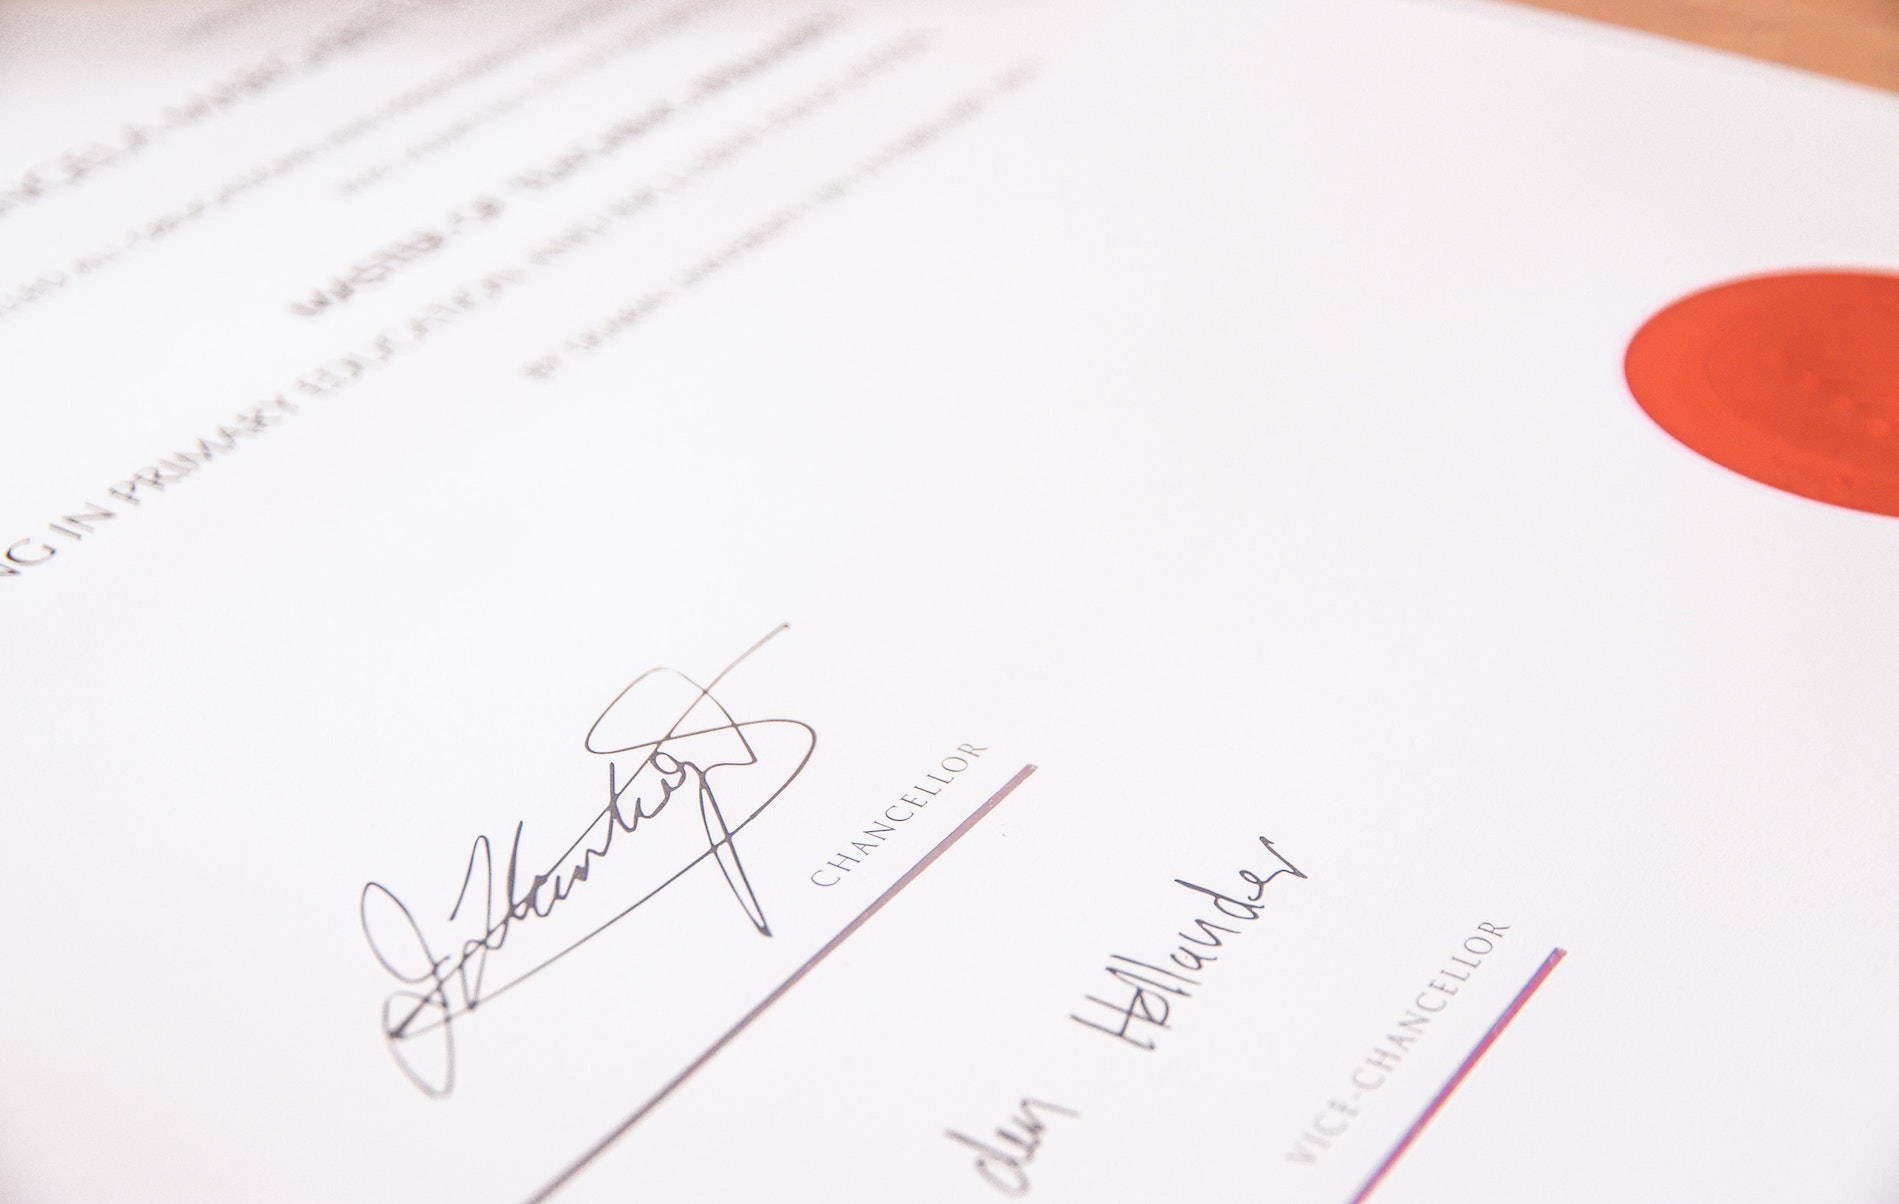 What is the purpose of a nondisclosure agreement?